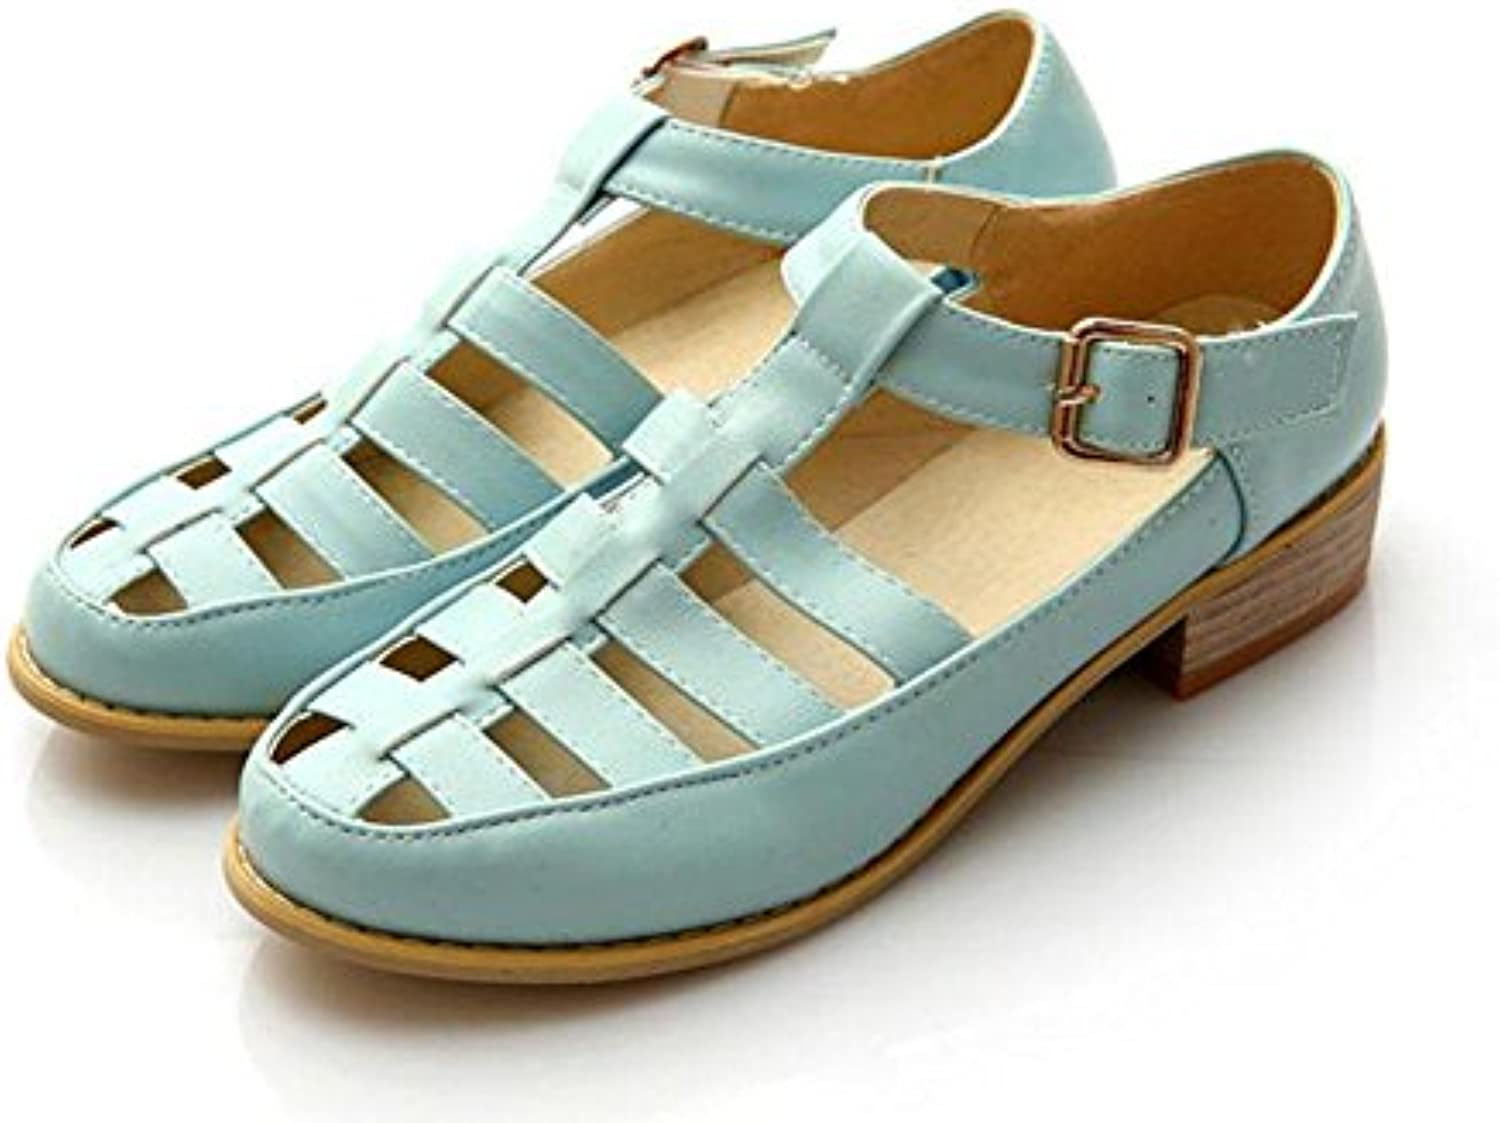 9bb71a859936 GLTER Woman Pumps Retro Roman Sandals Court Court Court Shoes Blue White  Pink B06Y6BG545 Parent 11a4b6